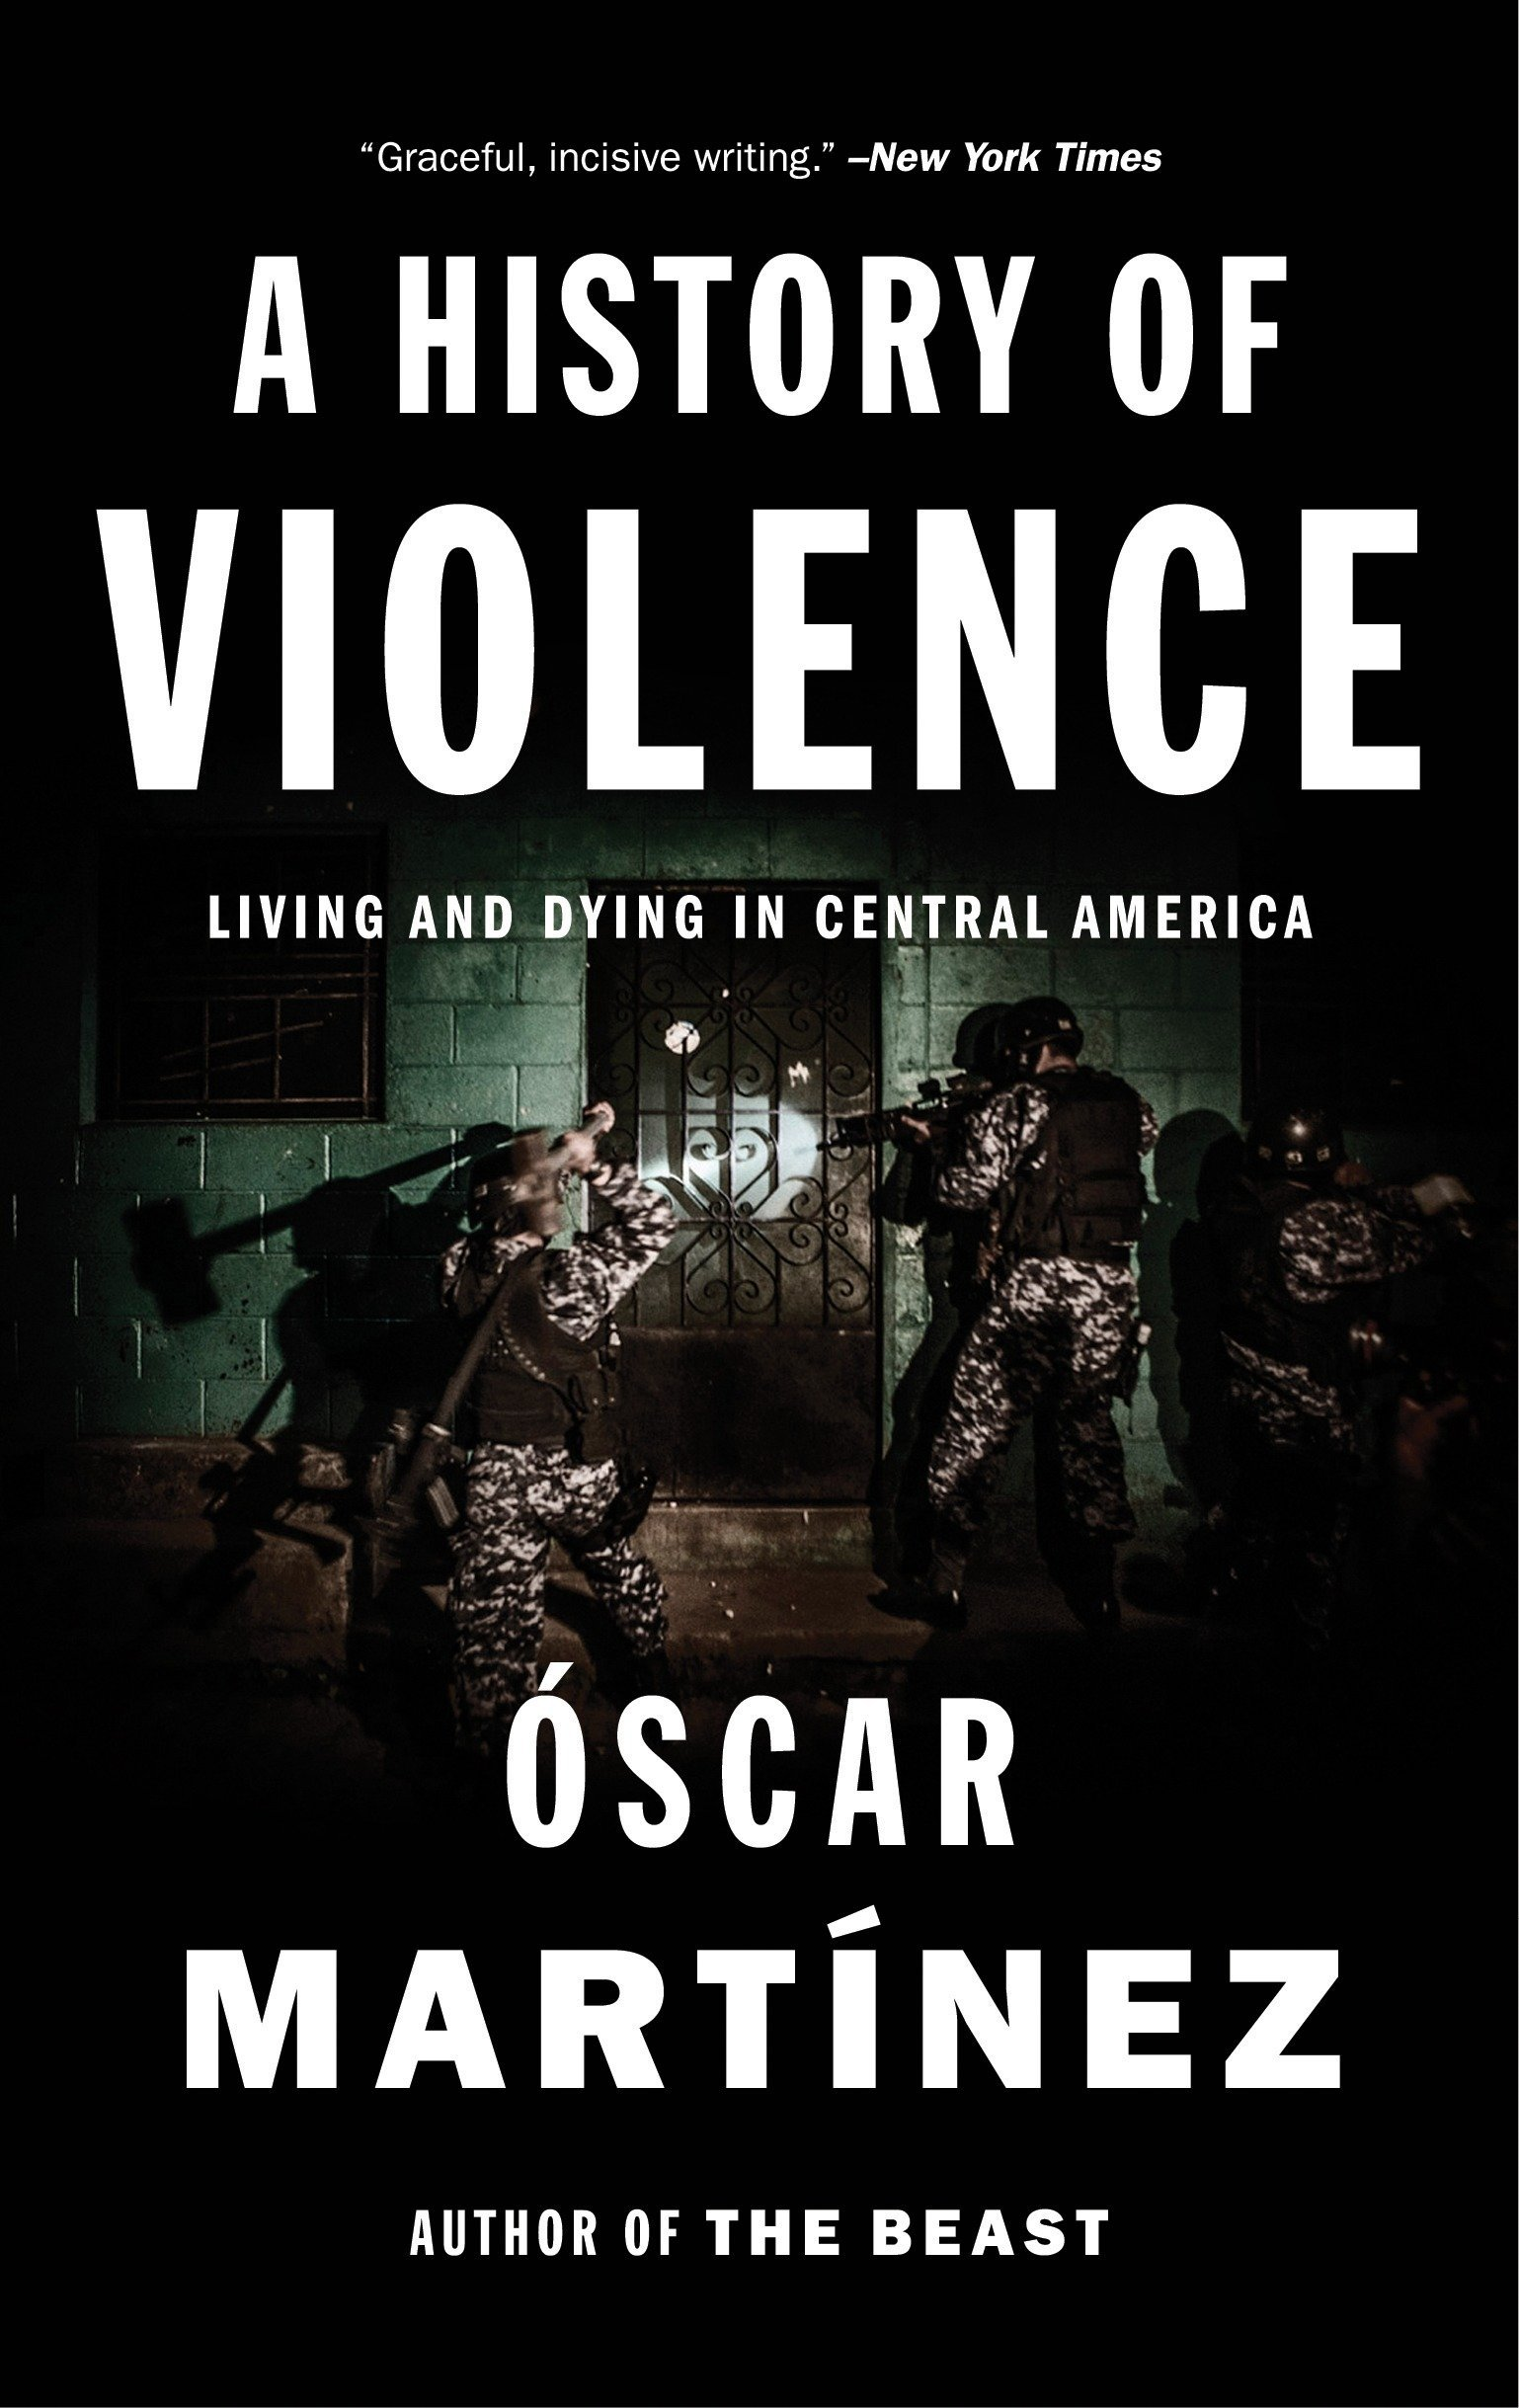 A History Of Violence Living And Dying In Central America Oscar View Topic Fishing 14 2 Romex From Exterior Wall Light To Underbelly Martinez 9781784781712 Books